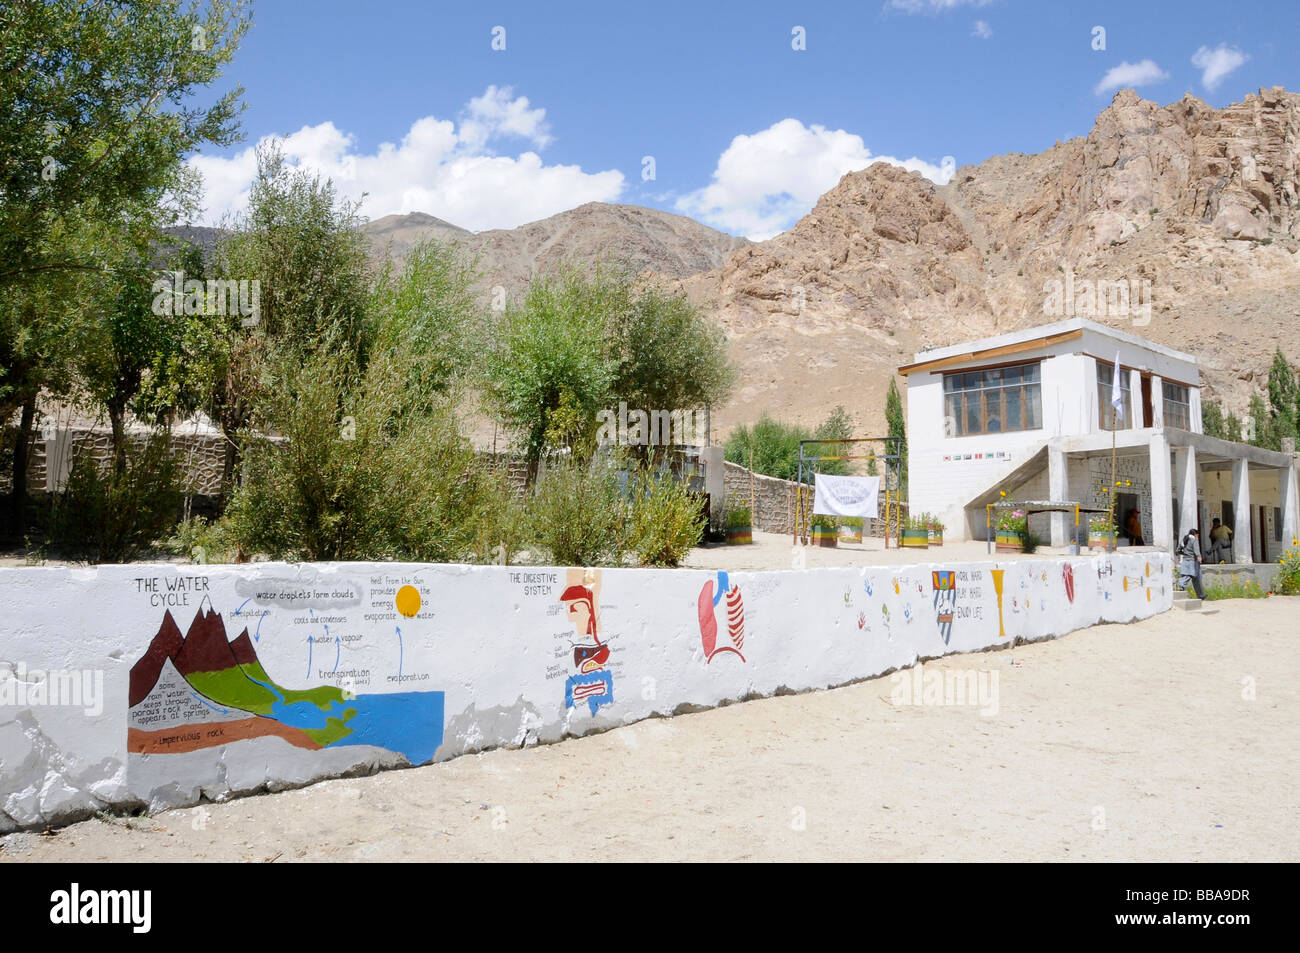 Schoolyard in Phiyang, the walls painted with murals with informative charts, Ladakh, India, Himalayas, Asia Stock Photo